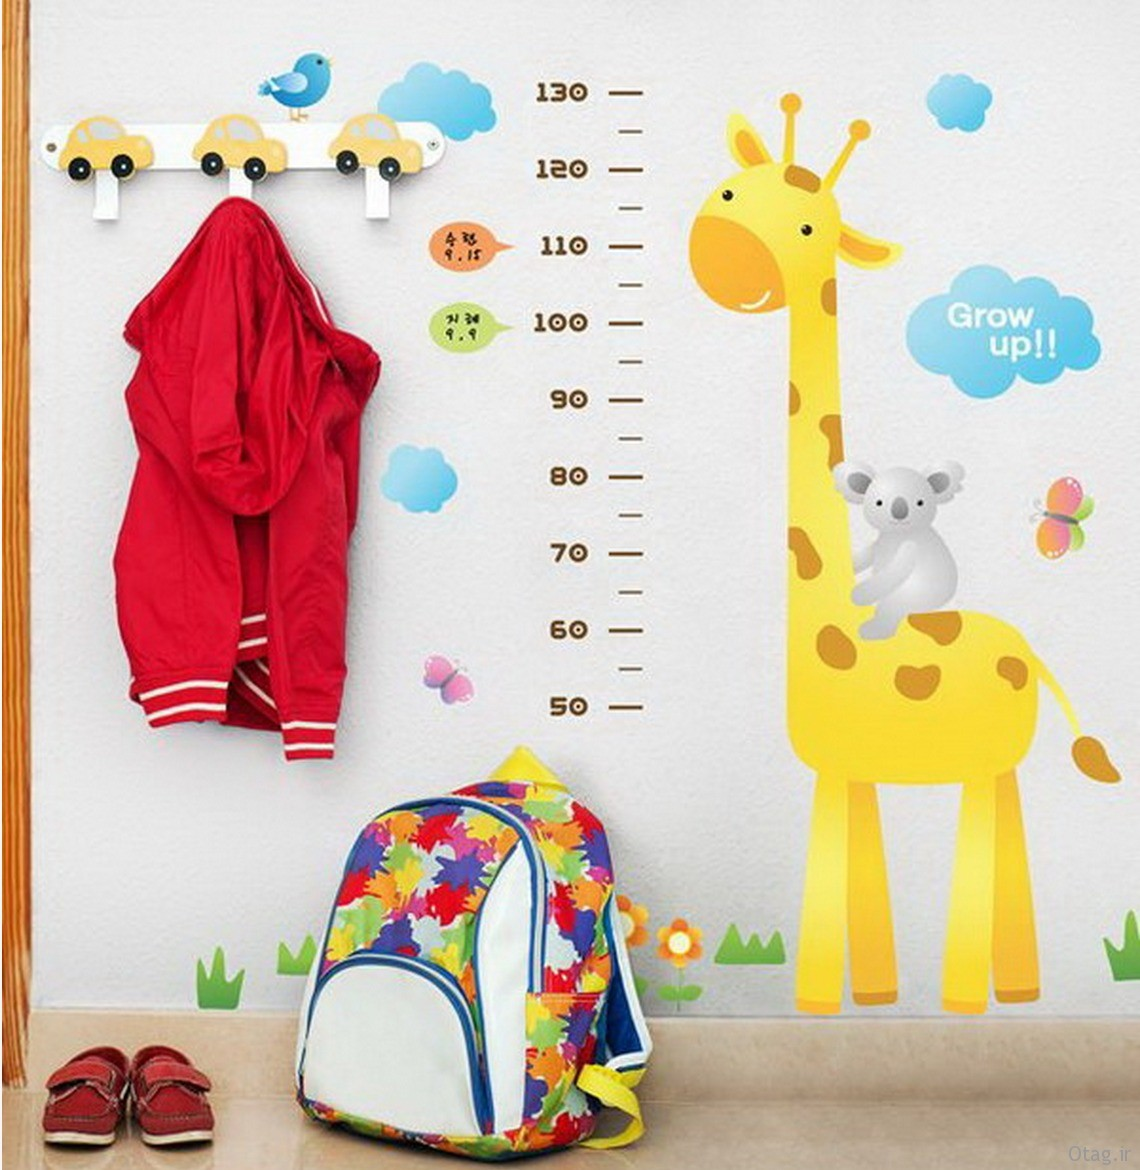 kids-room-stickers (4)